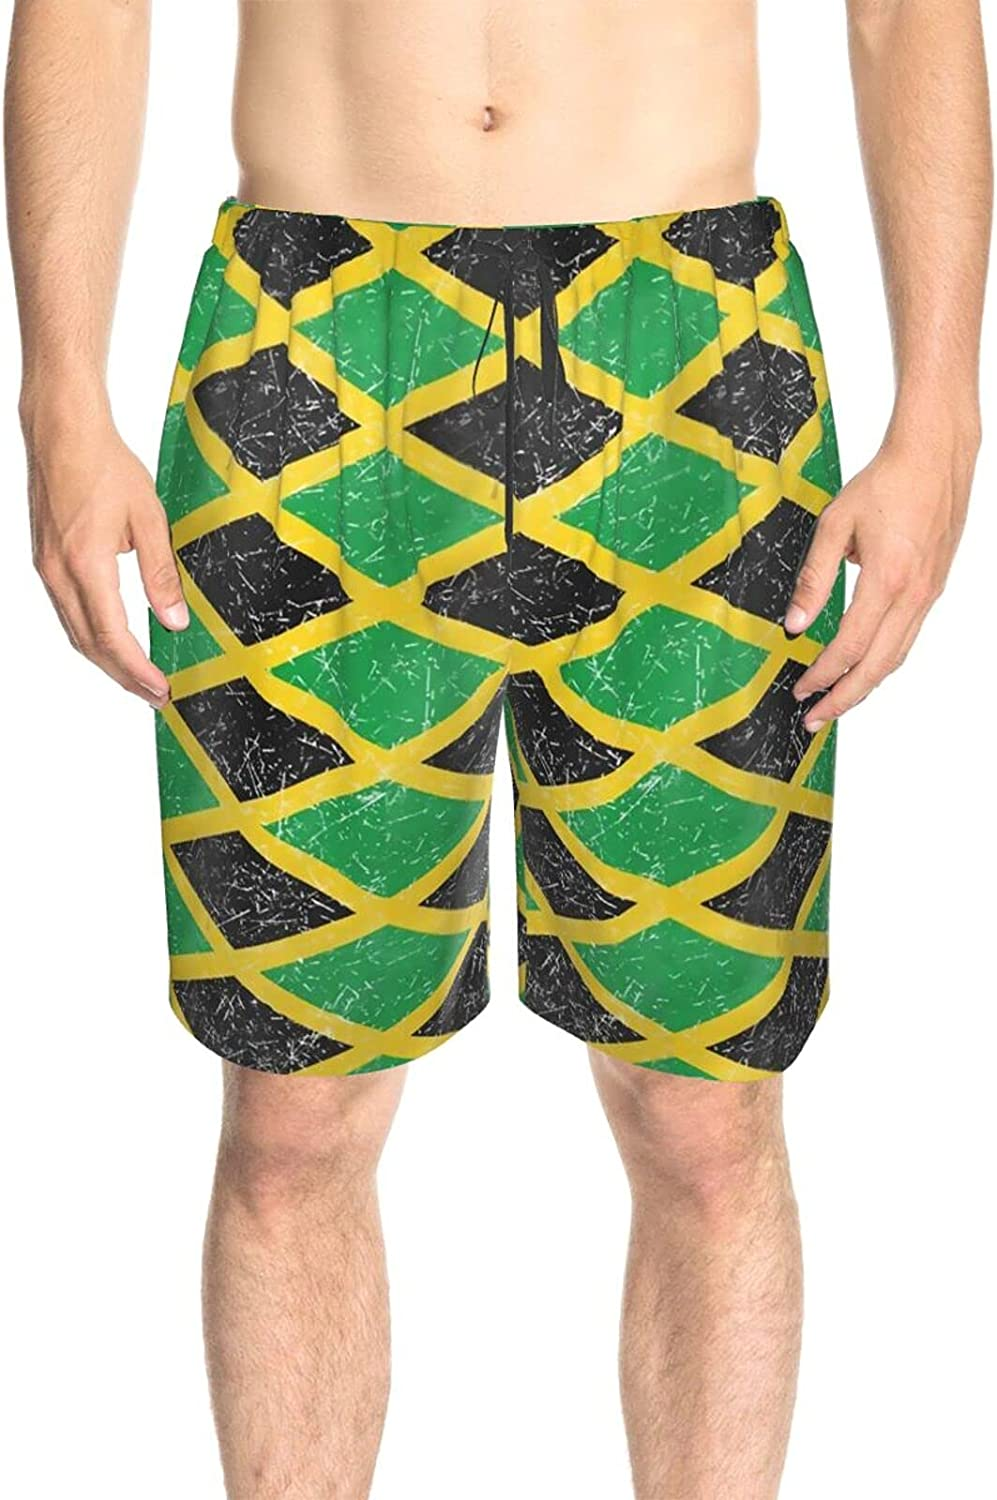 JINJUELS Mens Bathing Suits Jamaica Flag Bathing Suit Boardshorts Quick Dry Cool Summer Boardshorts with Liner